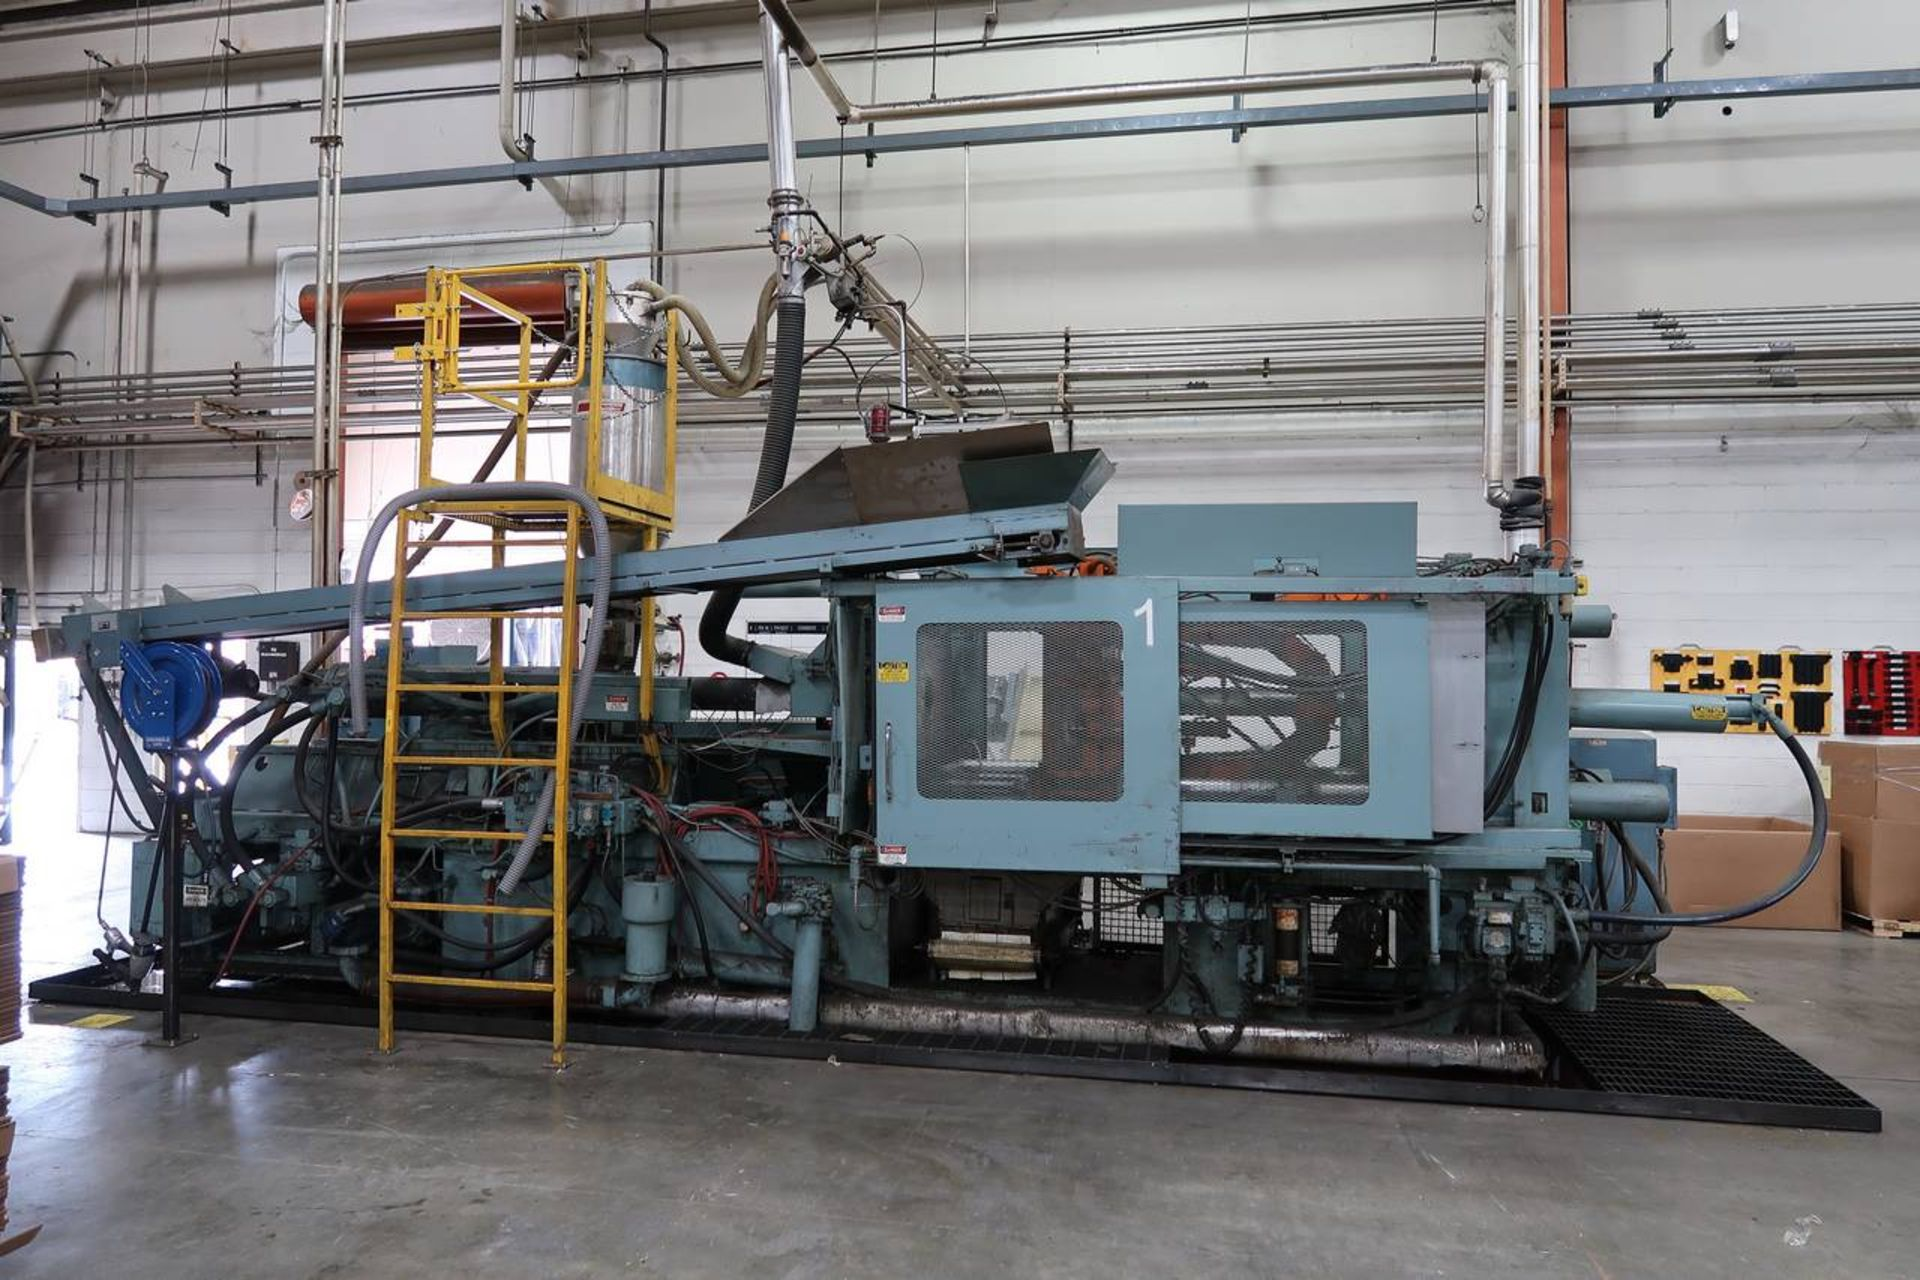 1986 HPM 400-TP-20 400-Ton Thermo Plastic Injection Molding Press - Image 5 of 40